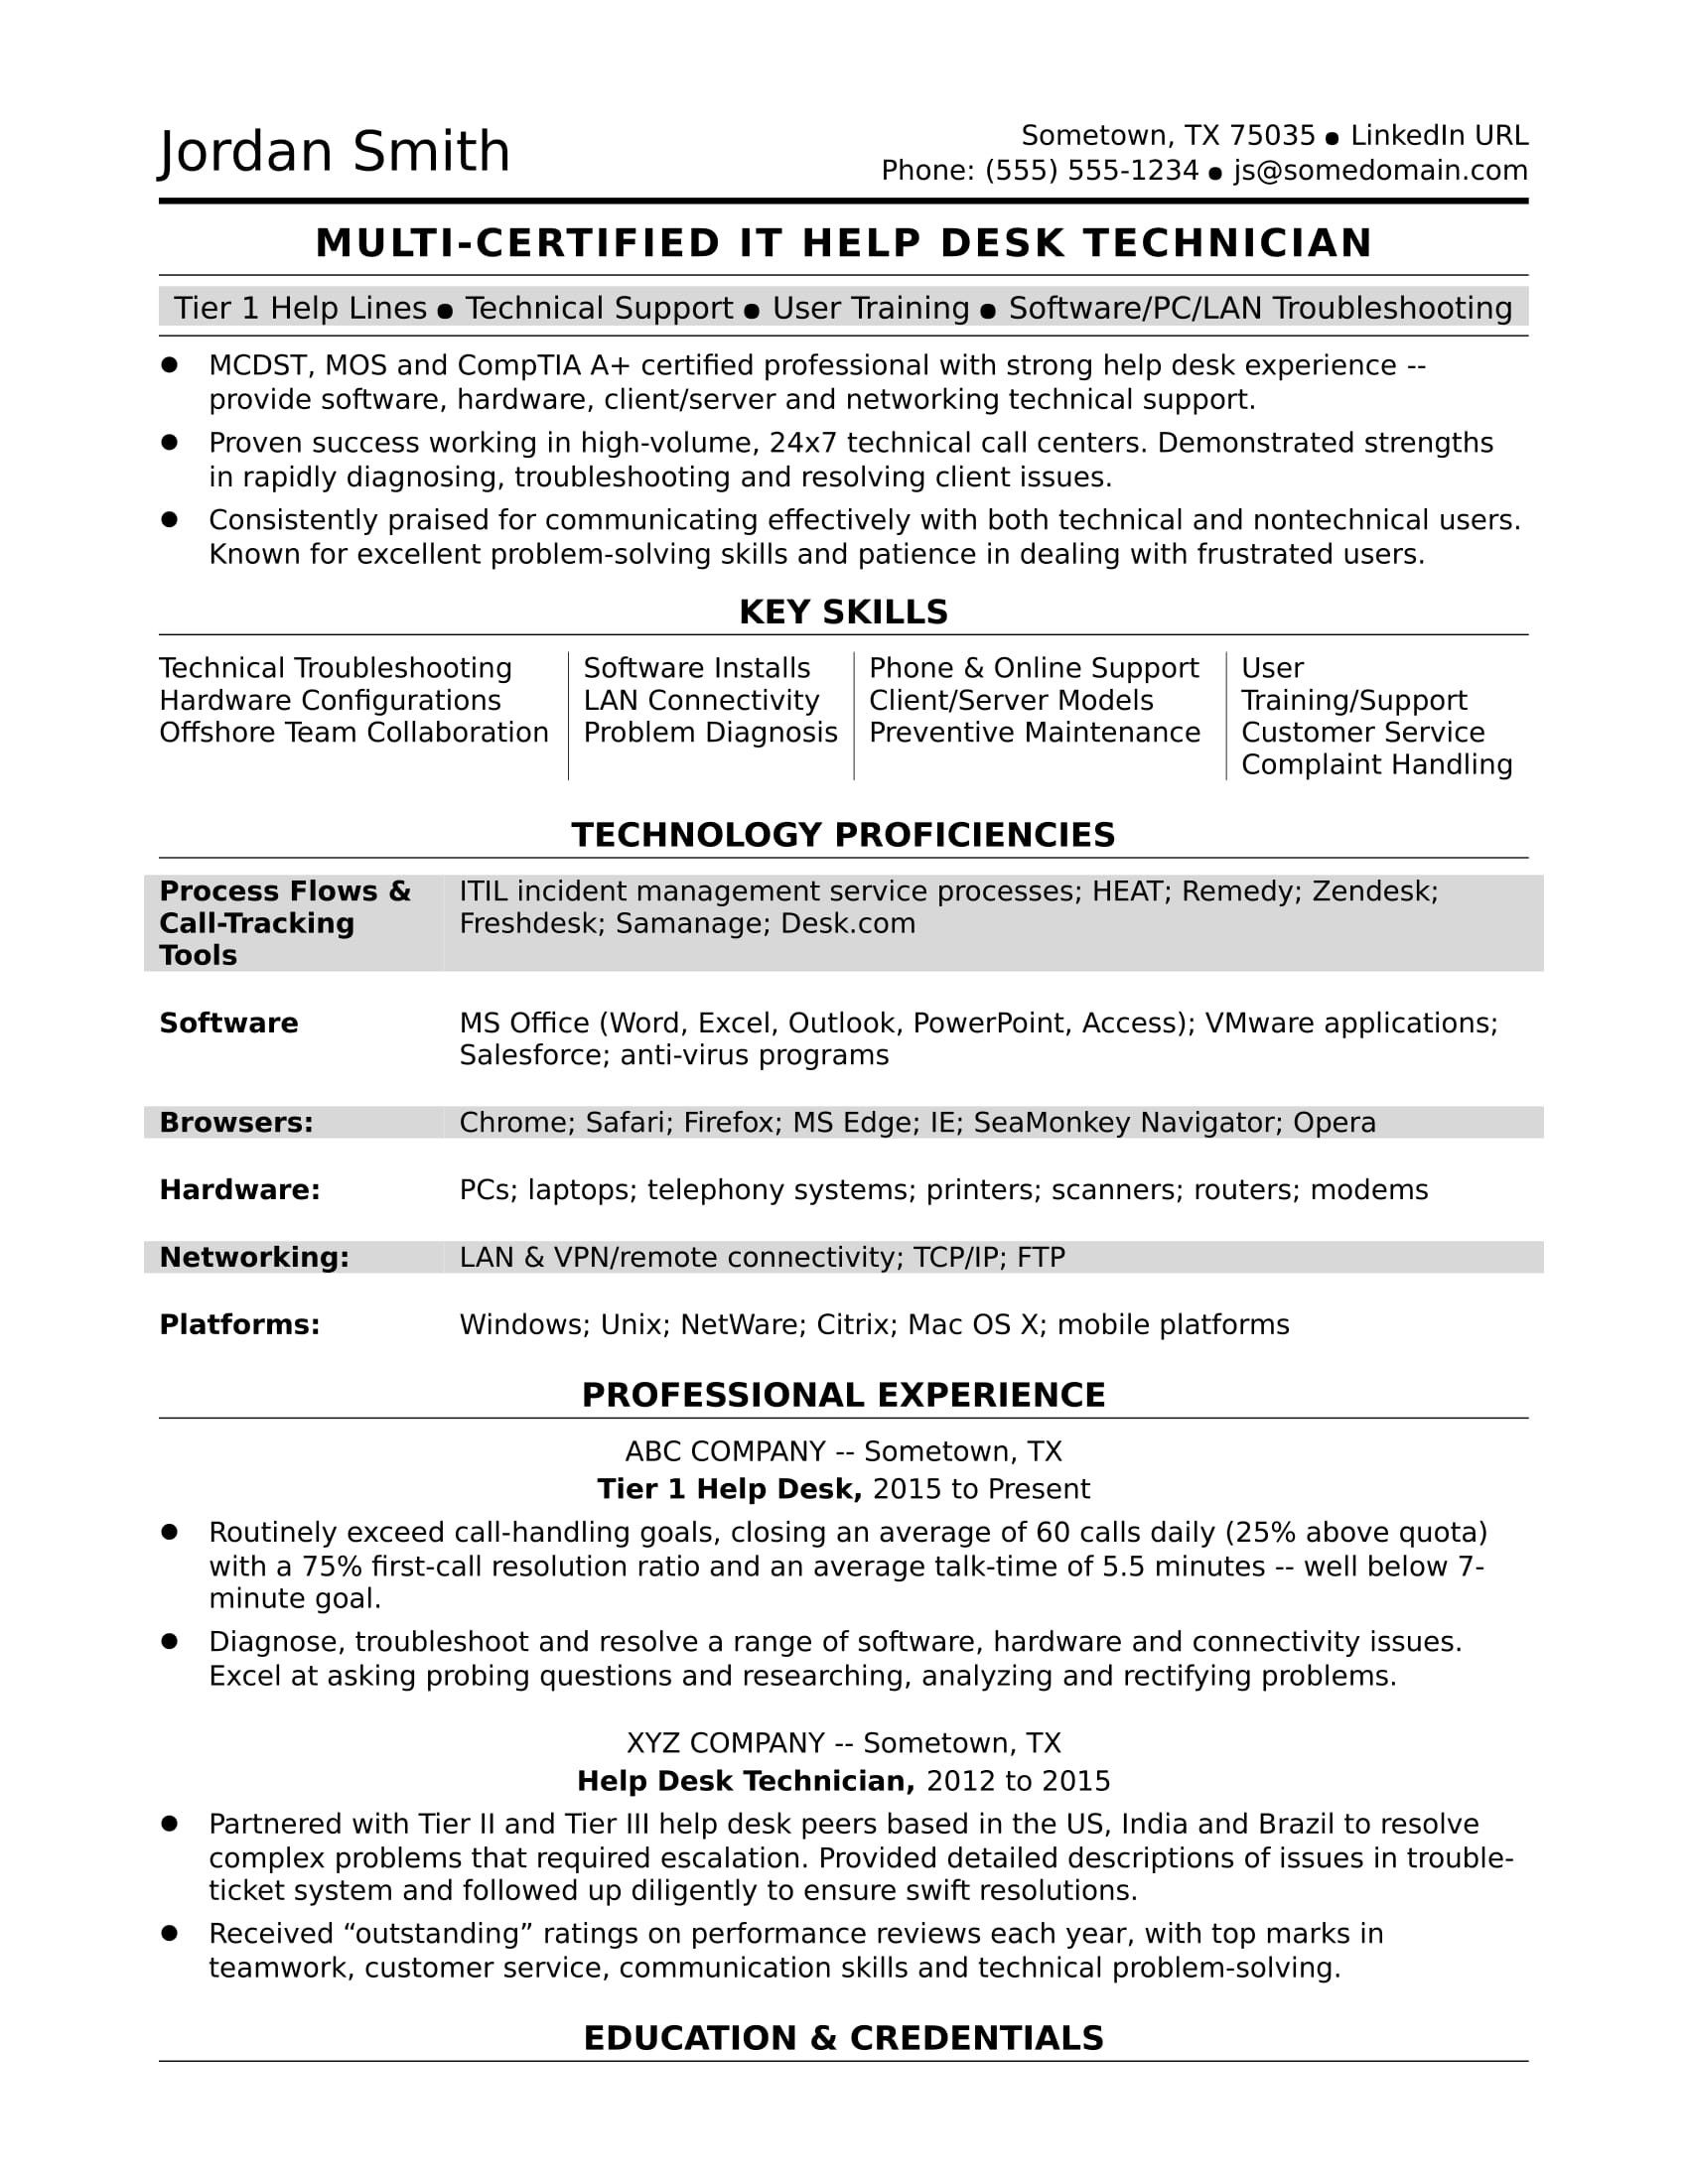 Professional Resume Help (With images) Basic resume